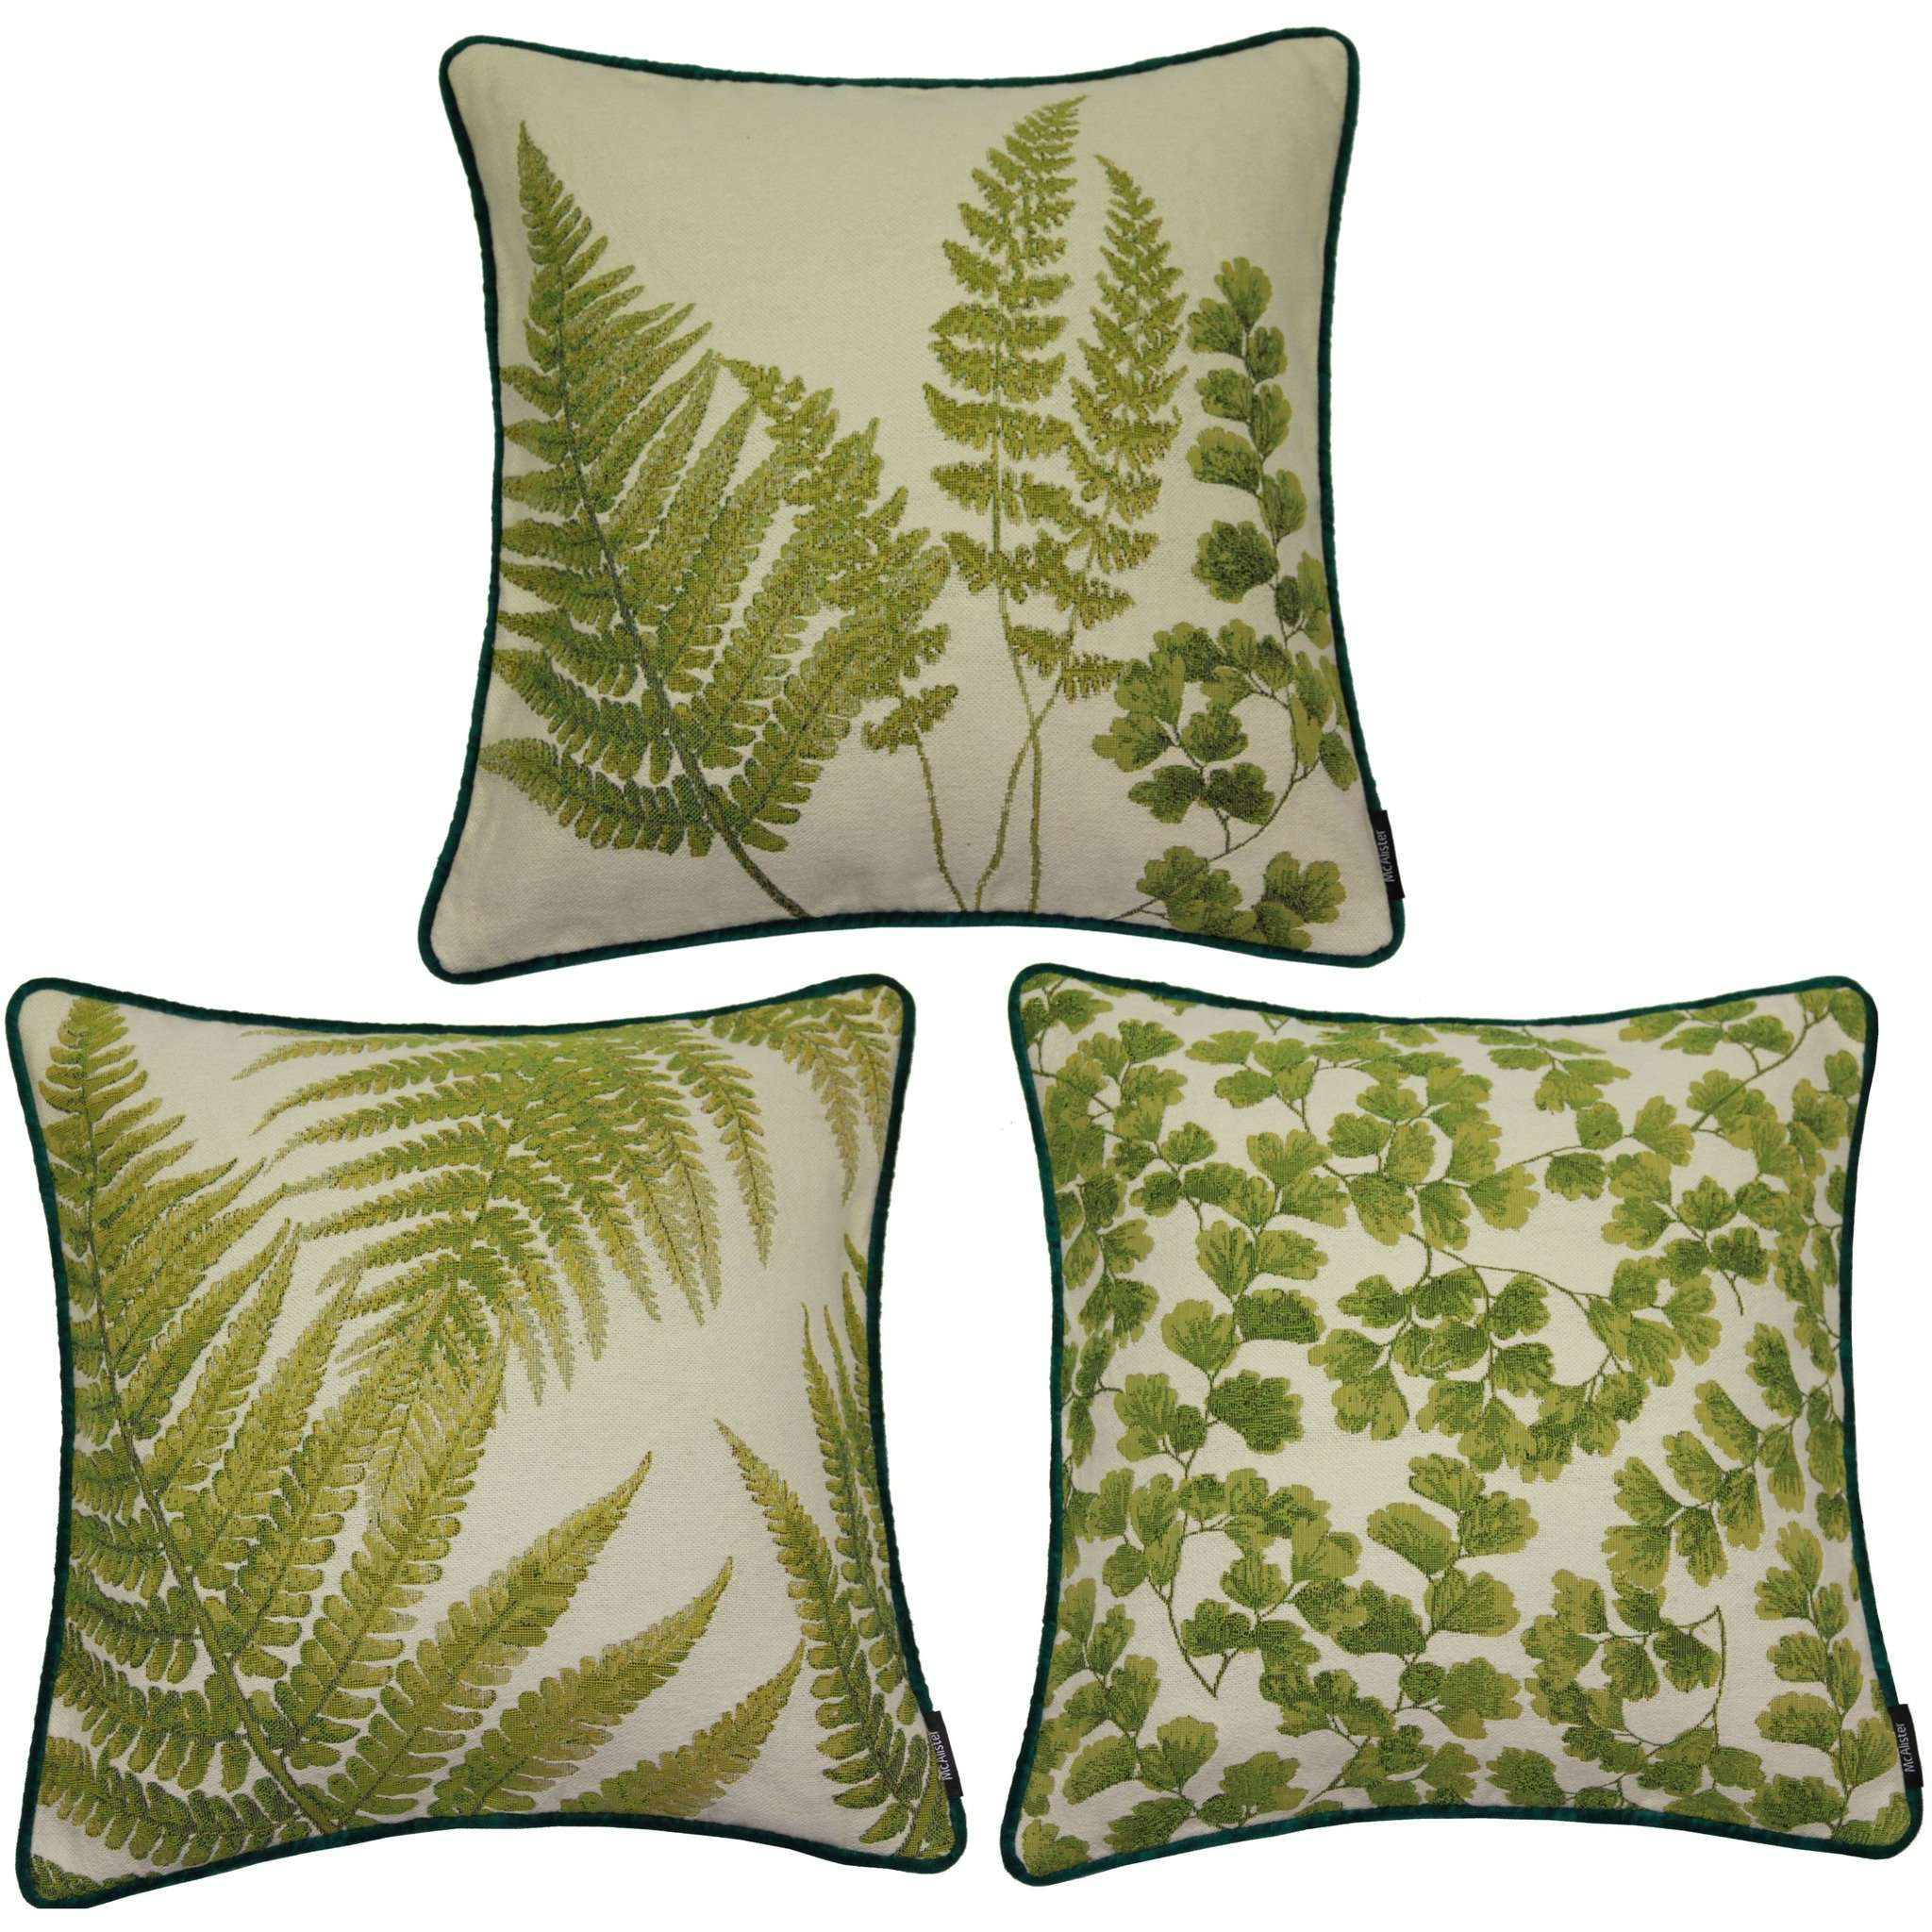 McAlister Textiles Tapestry Floral Cushion Sets Cushions and Covers Set of 3 Cushion Covers